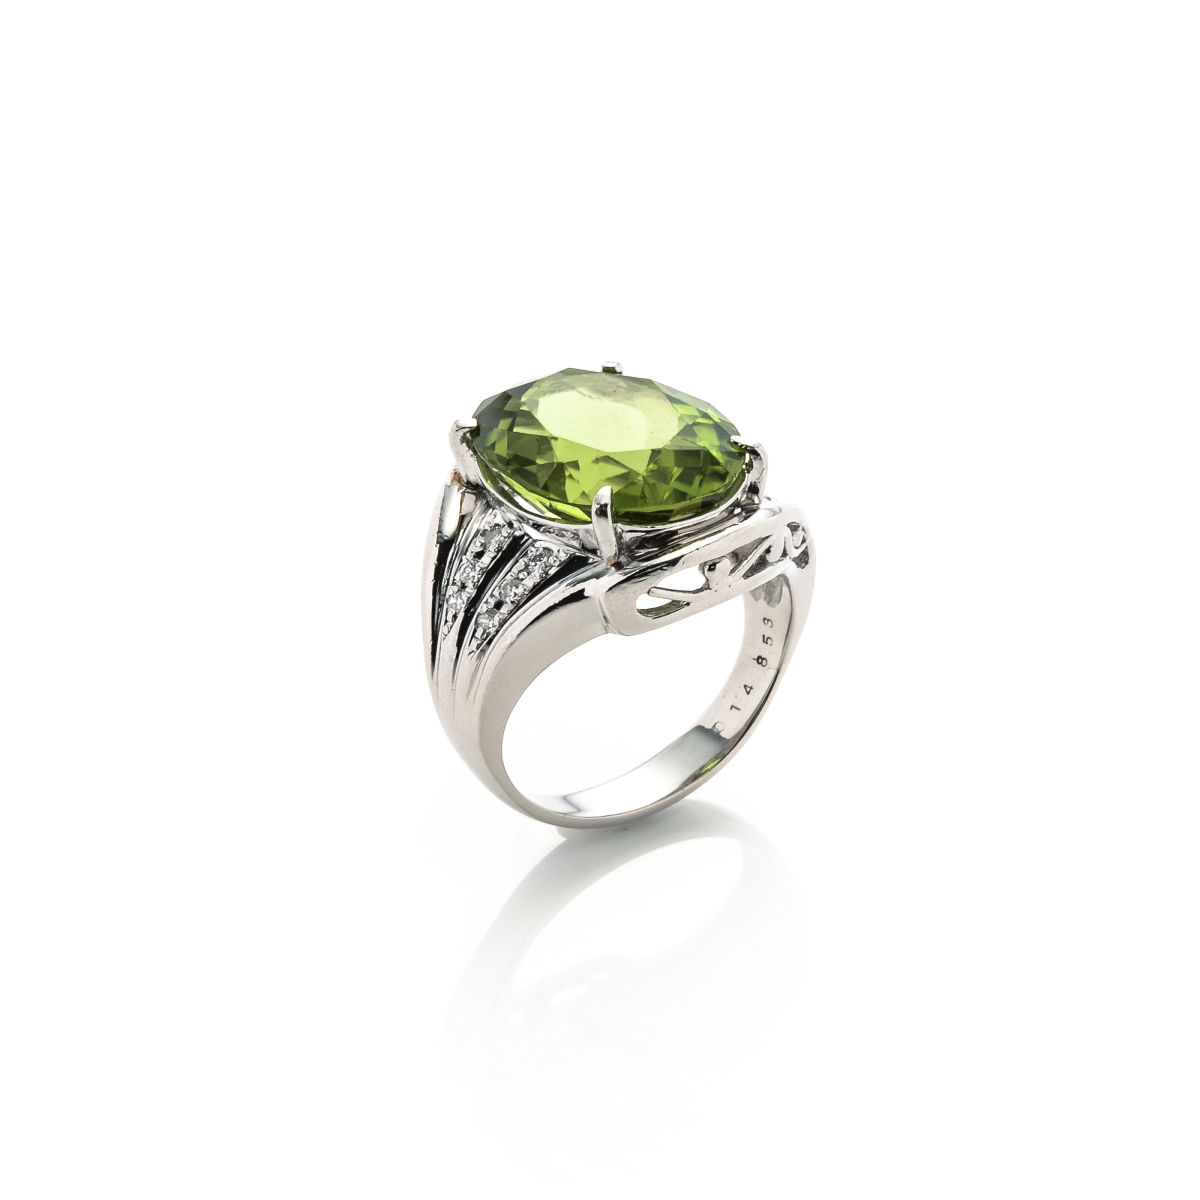 handmade engraved ring engagement certified vintage antique gold diamonds style carat peridot black rings wedding with unique